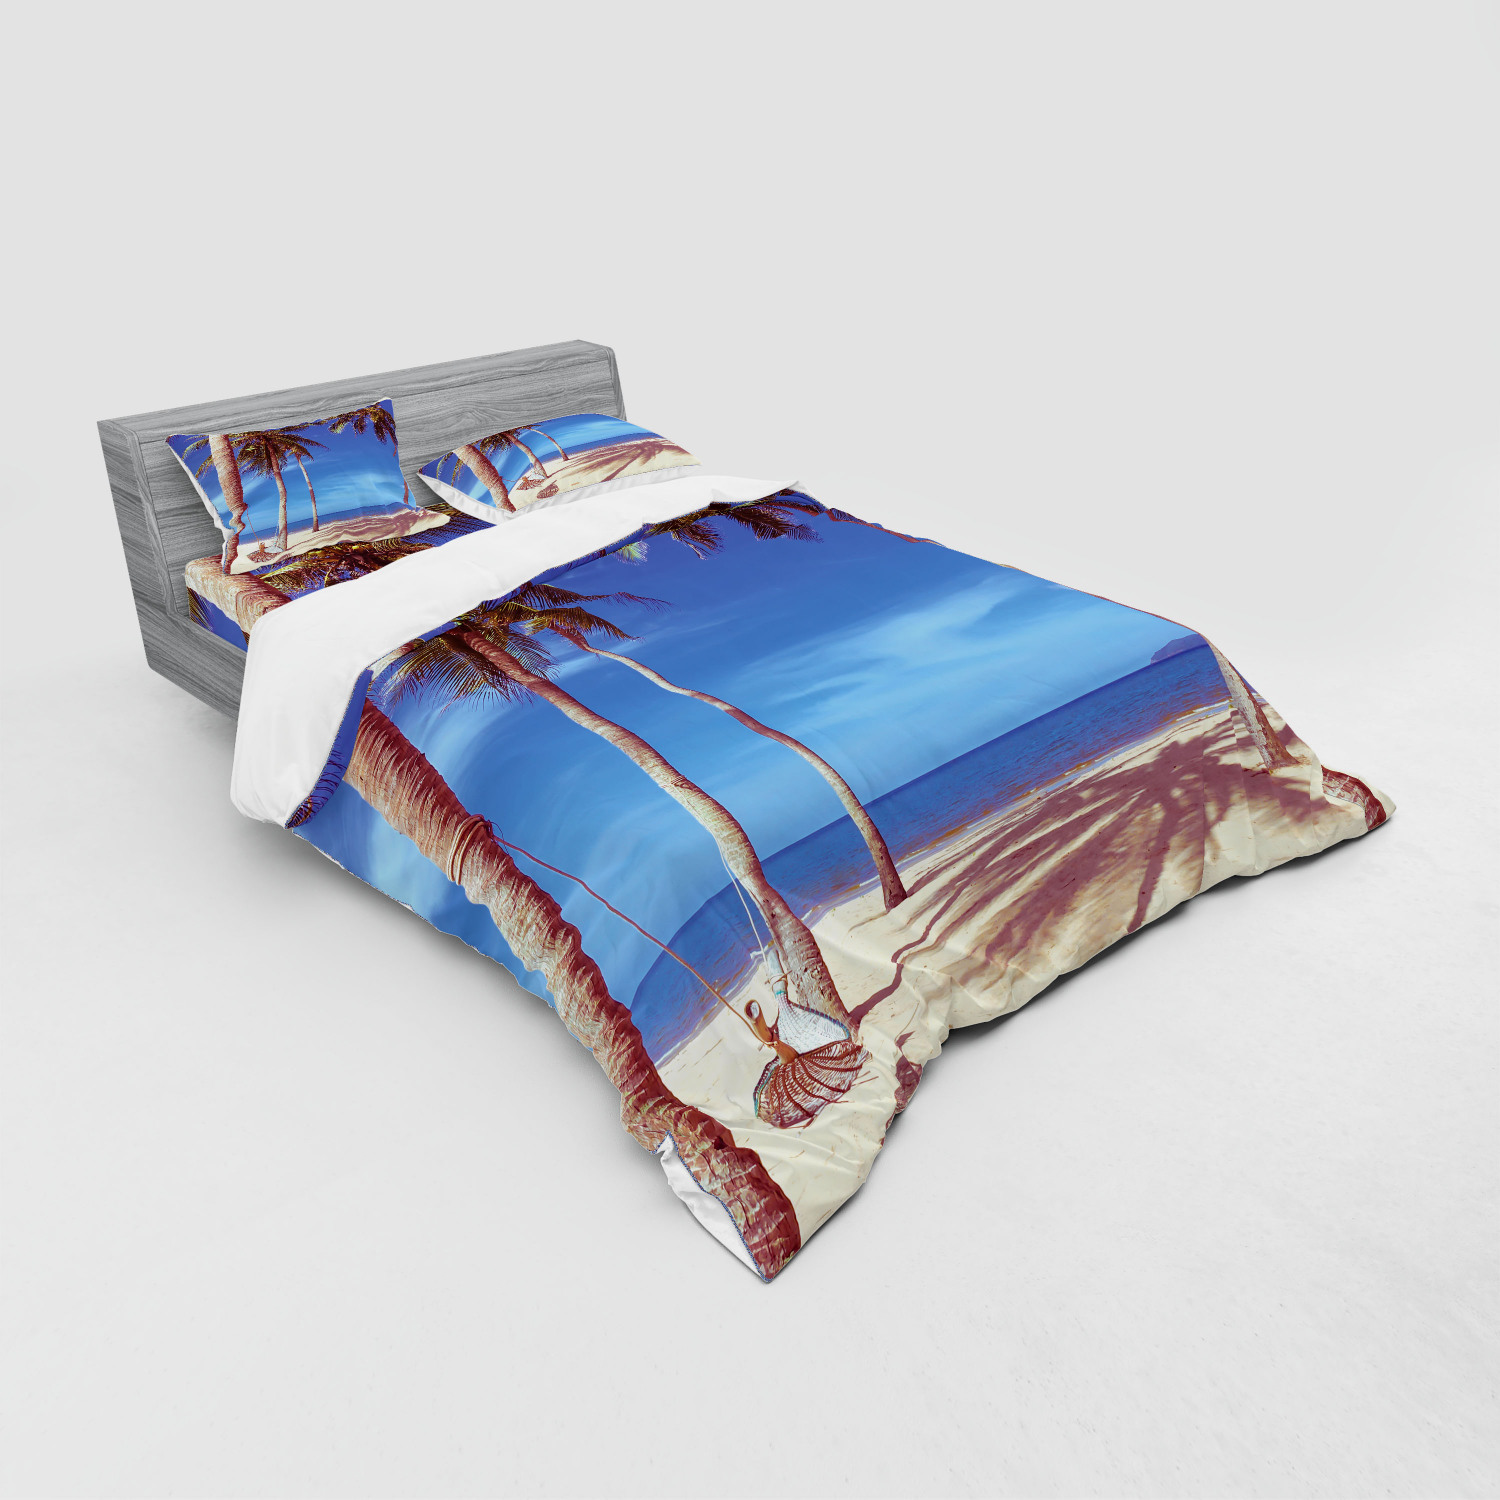 thumbnail 131 - Ambesonne Summer Bedding Set Duvet Cover Sham Fitted Sheet in 3 Sizes